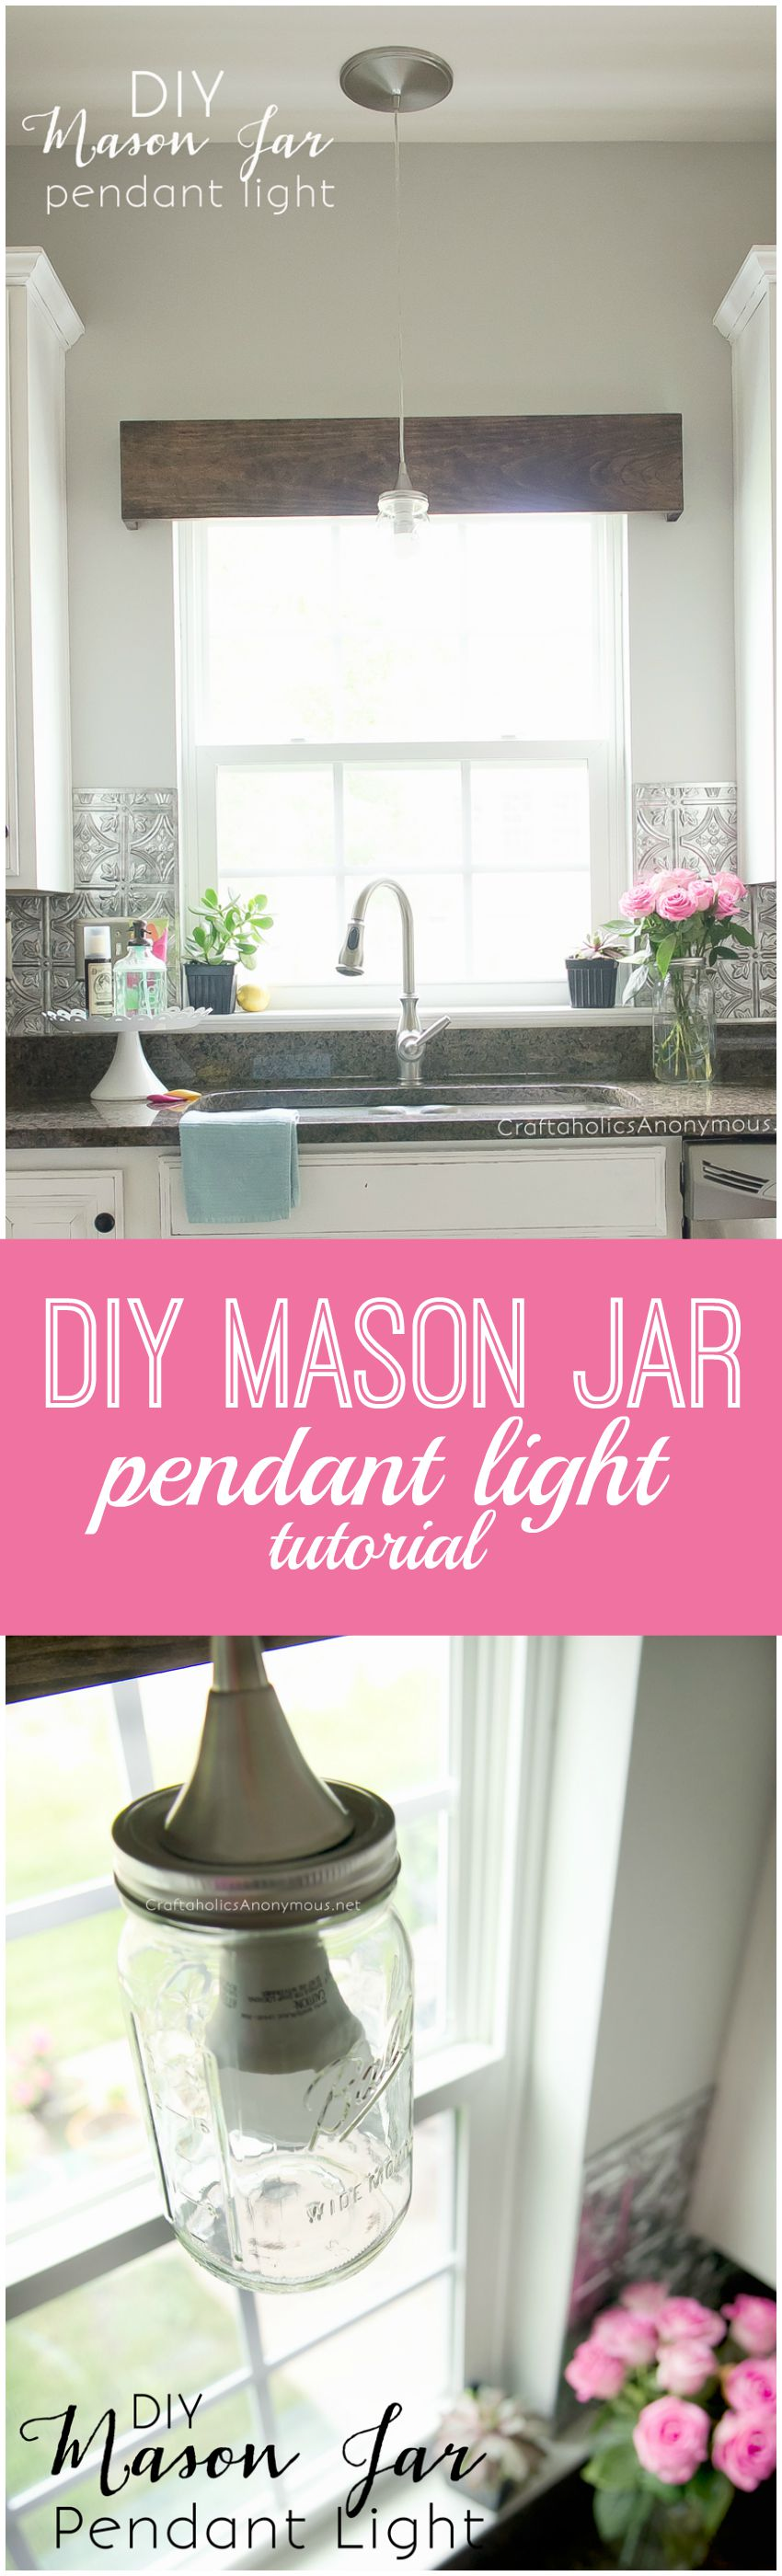 DIY mason jar pendant light tutorial || Quick easy way to turn a recessed light into a Mason Jar pendant in 20 mins! Costs about 20 dollars.